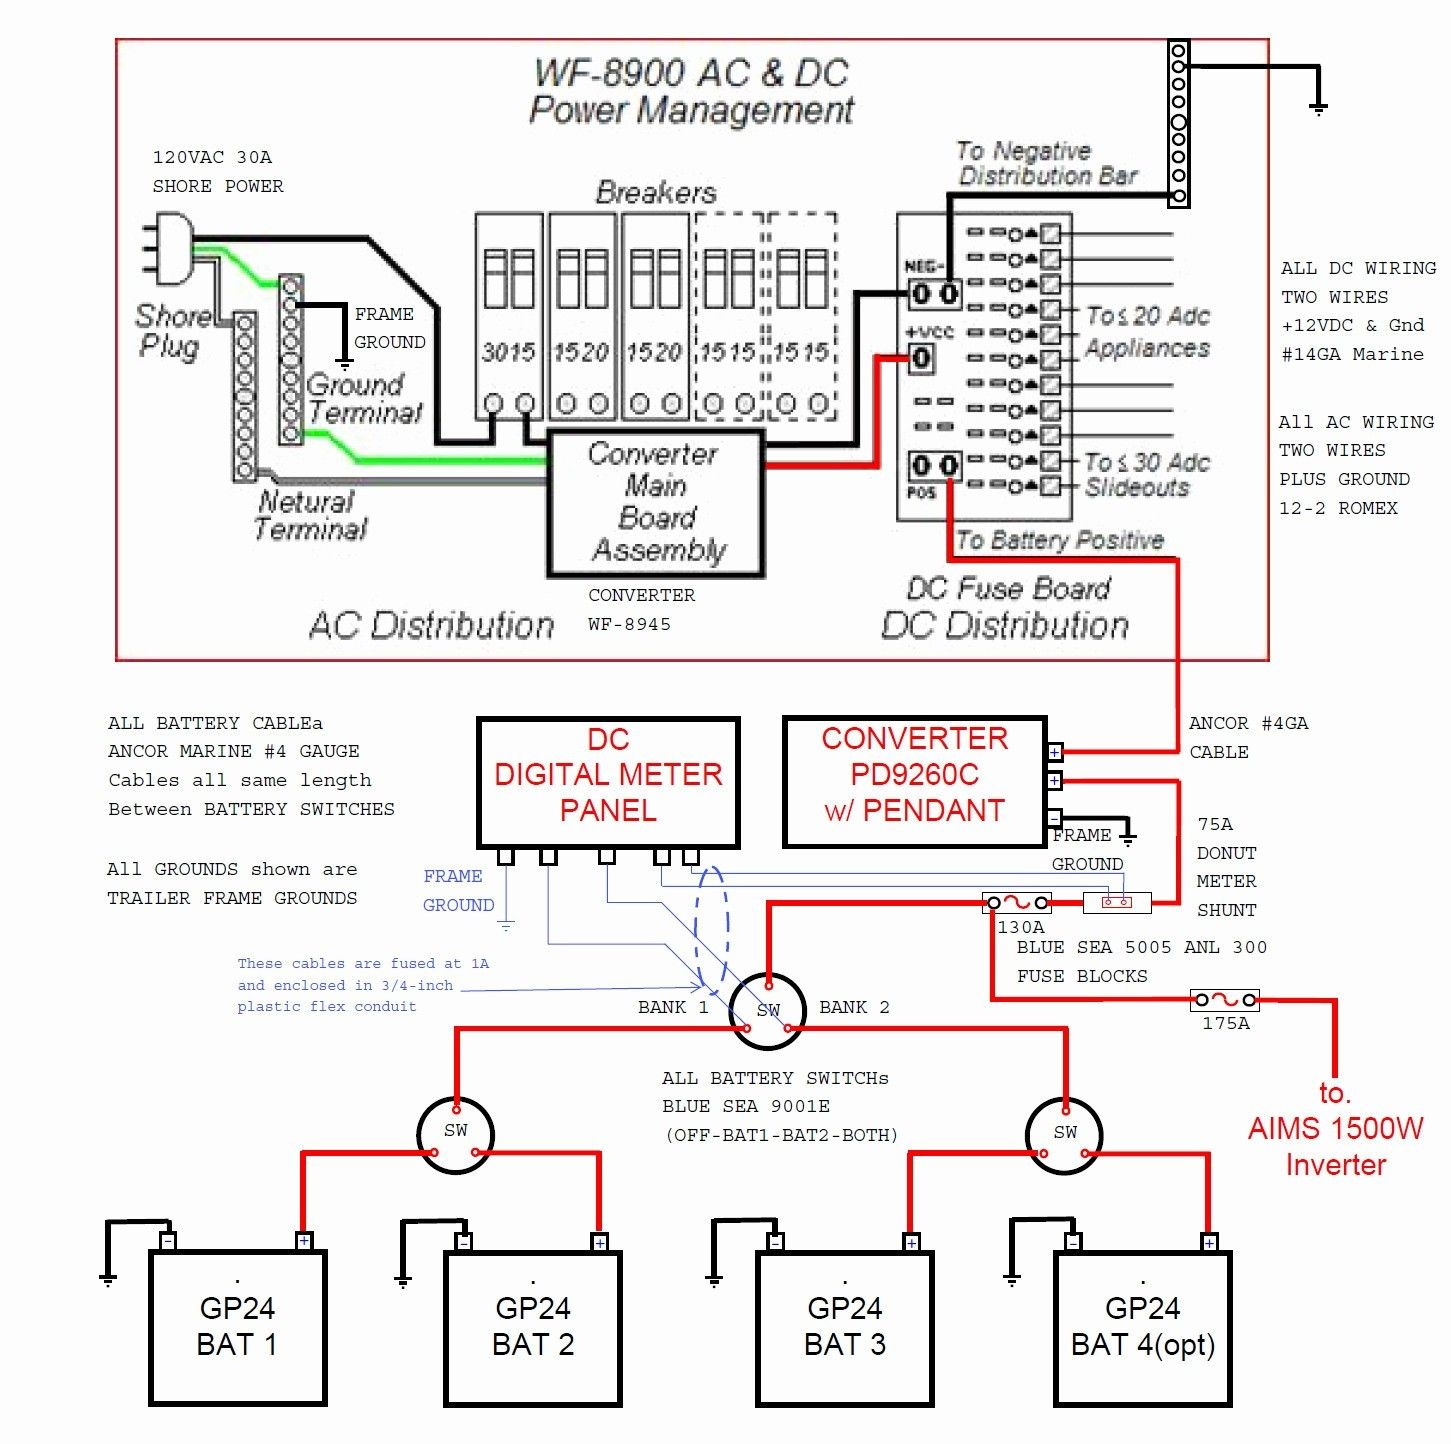 30 amp rv plug wiring diagram inspirational wiring diagram for rv 30 amp rv plug wiring [ 1451 x 1444 Pixel ]